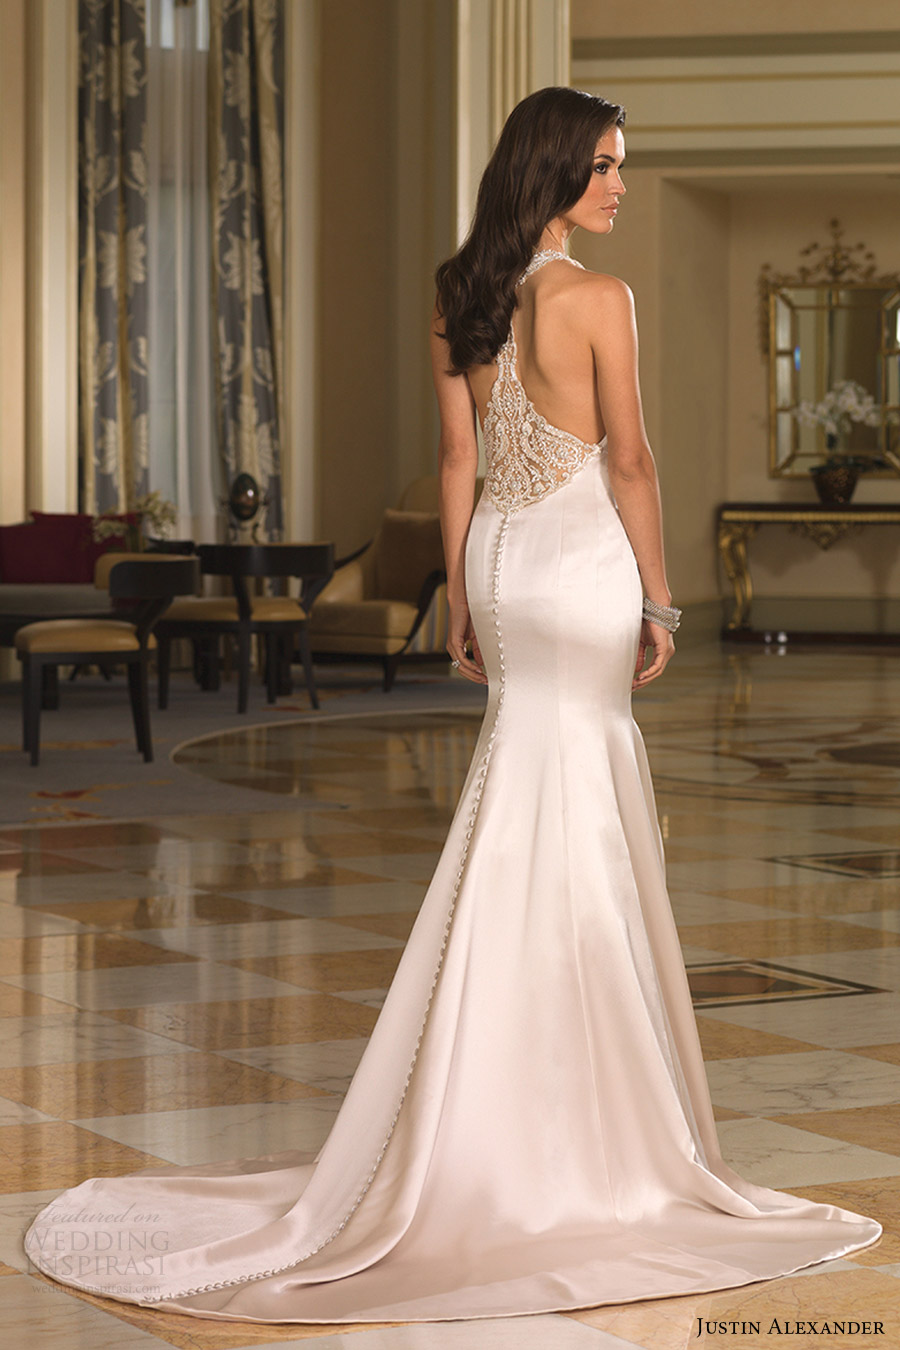 justin alexander bridal fall 2016 sleeveless jewel neckline fit flare wedding dress (8855) bv racerback train glam